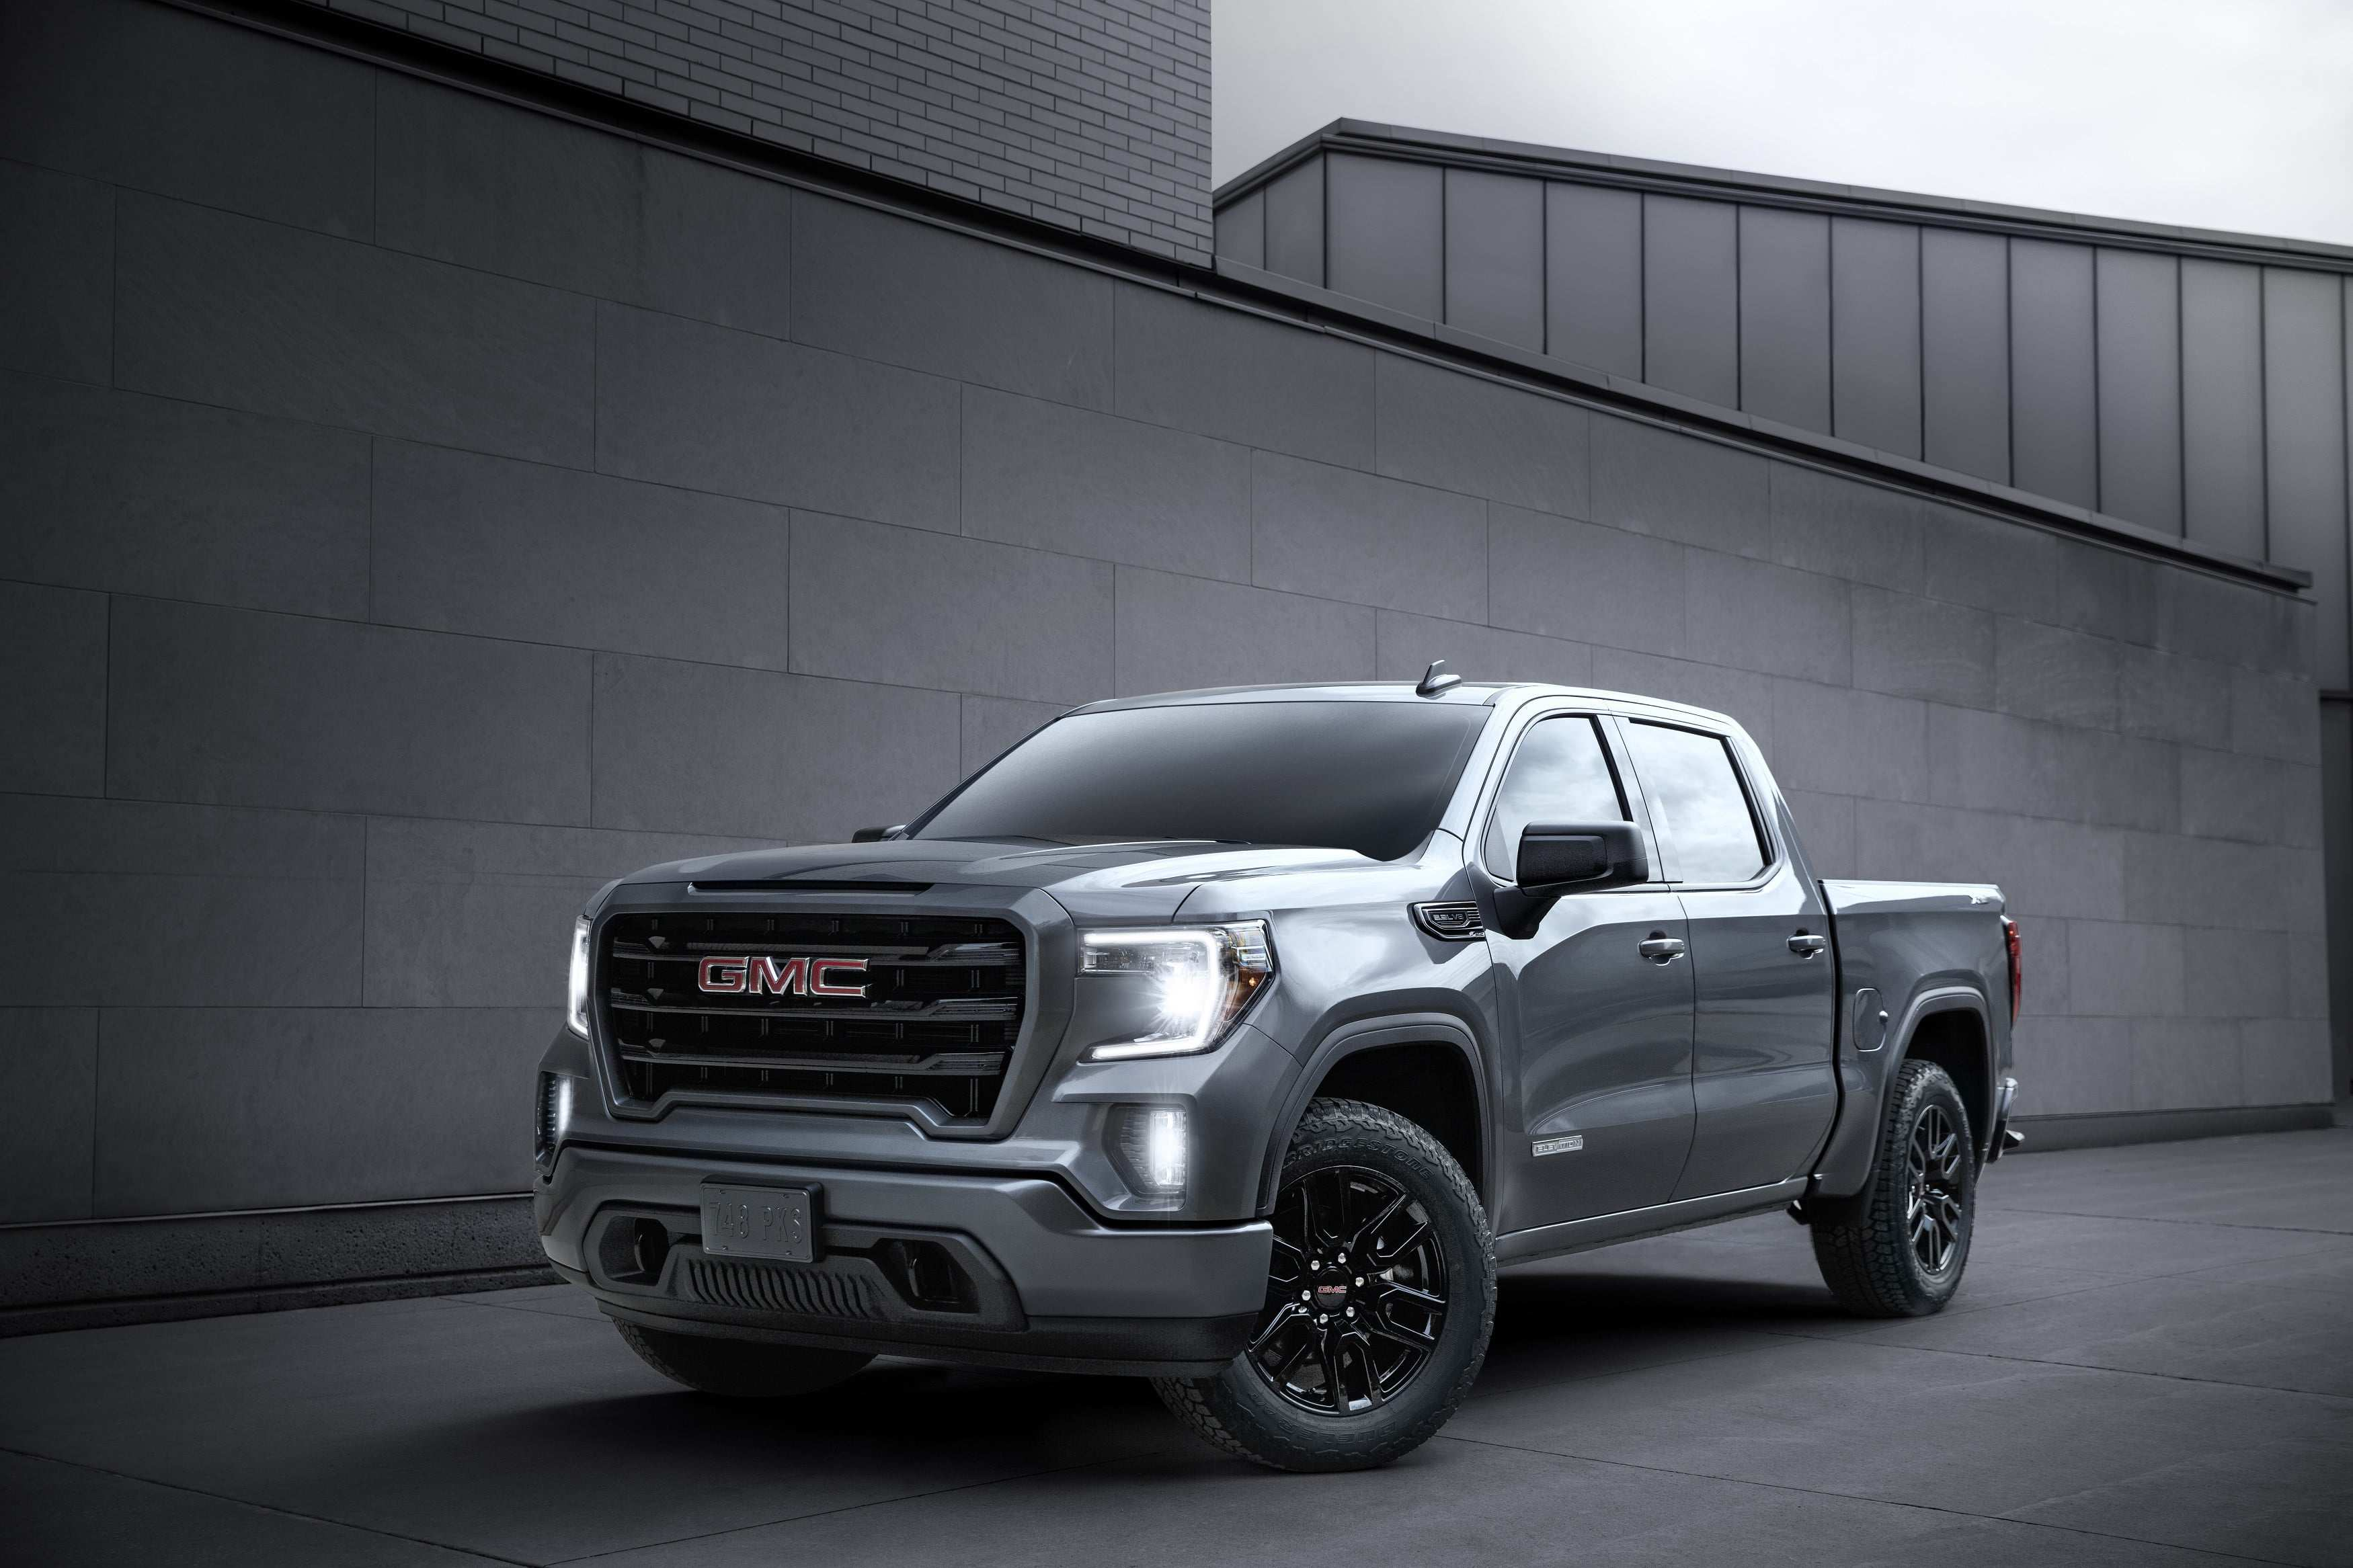 77 New Gmc New Truck 2020 Configurations